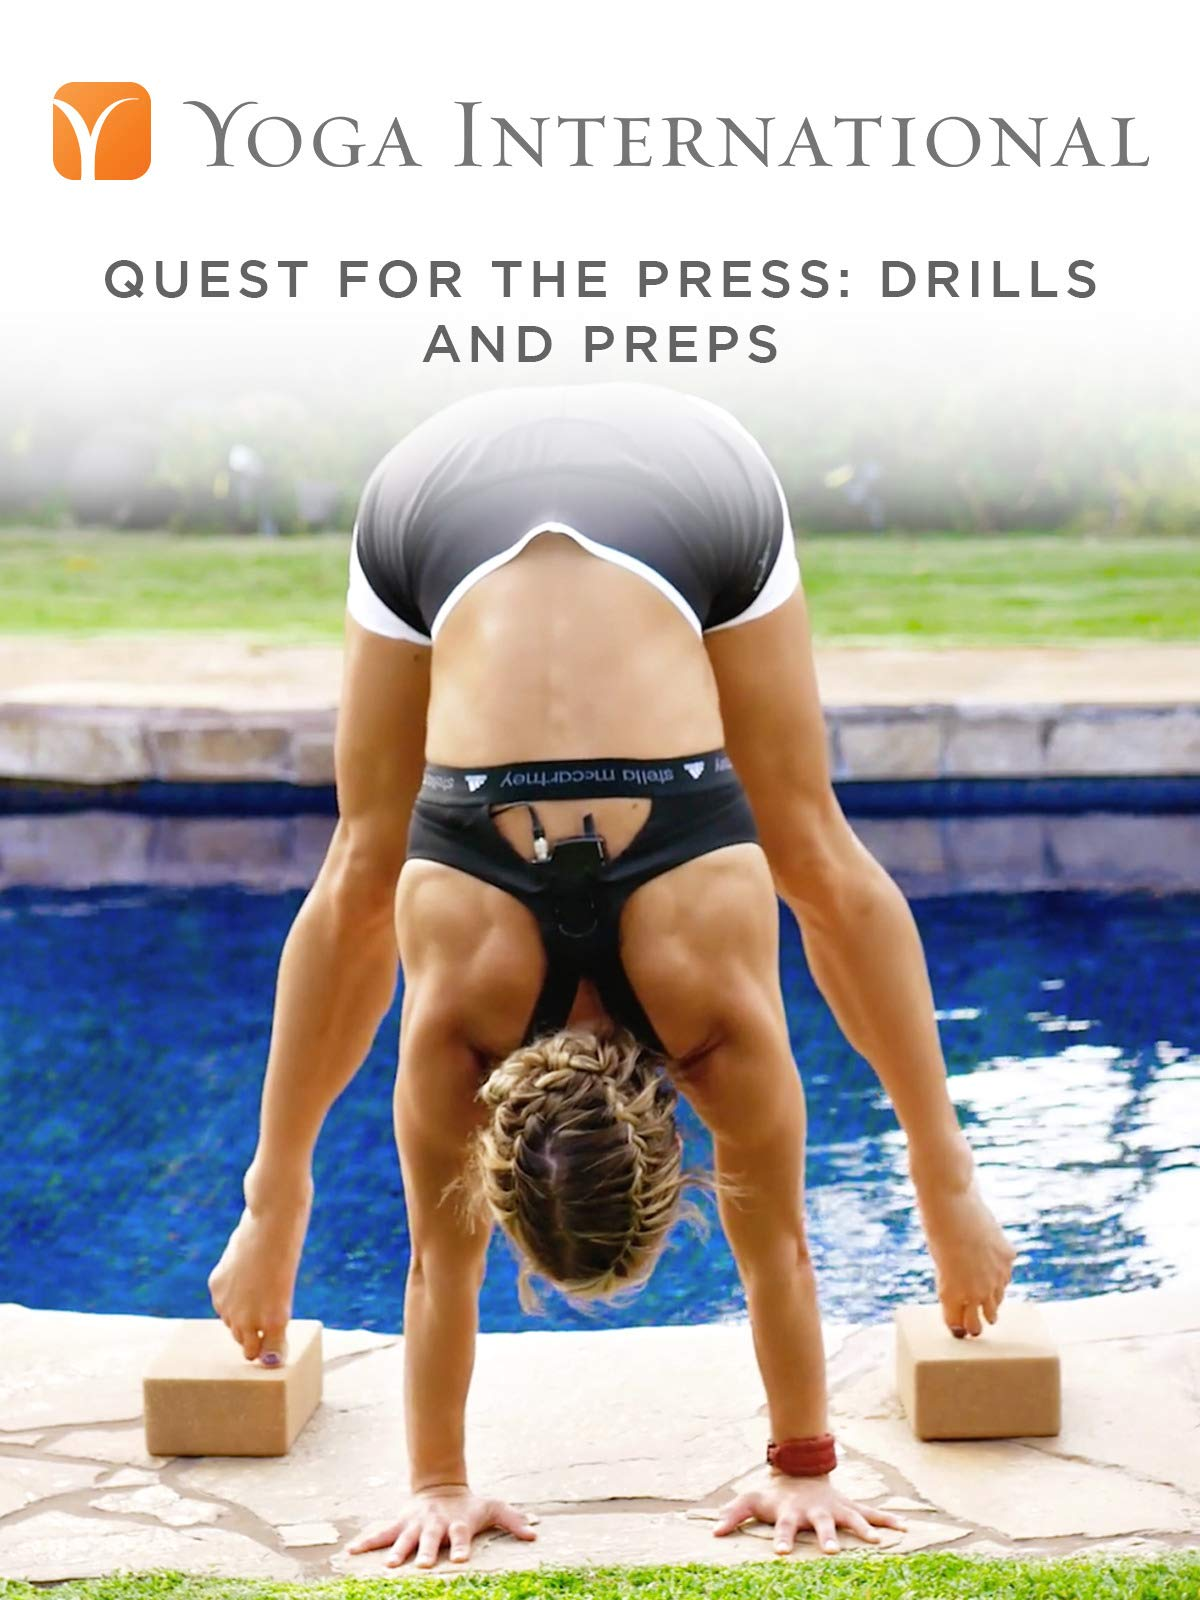 Quest for the Press: Drills and Preps on Amazon Prime Instant Video UK